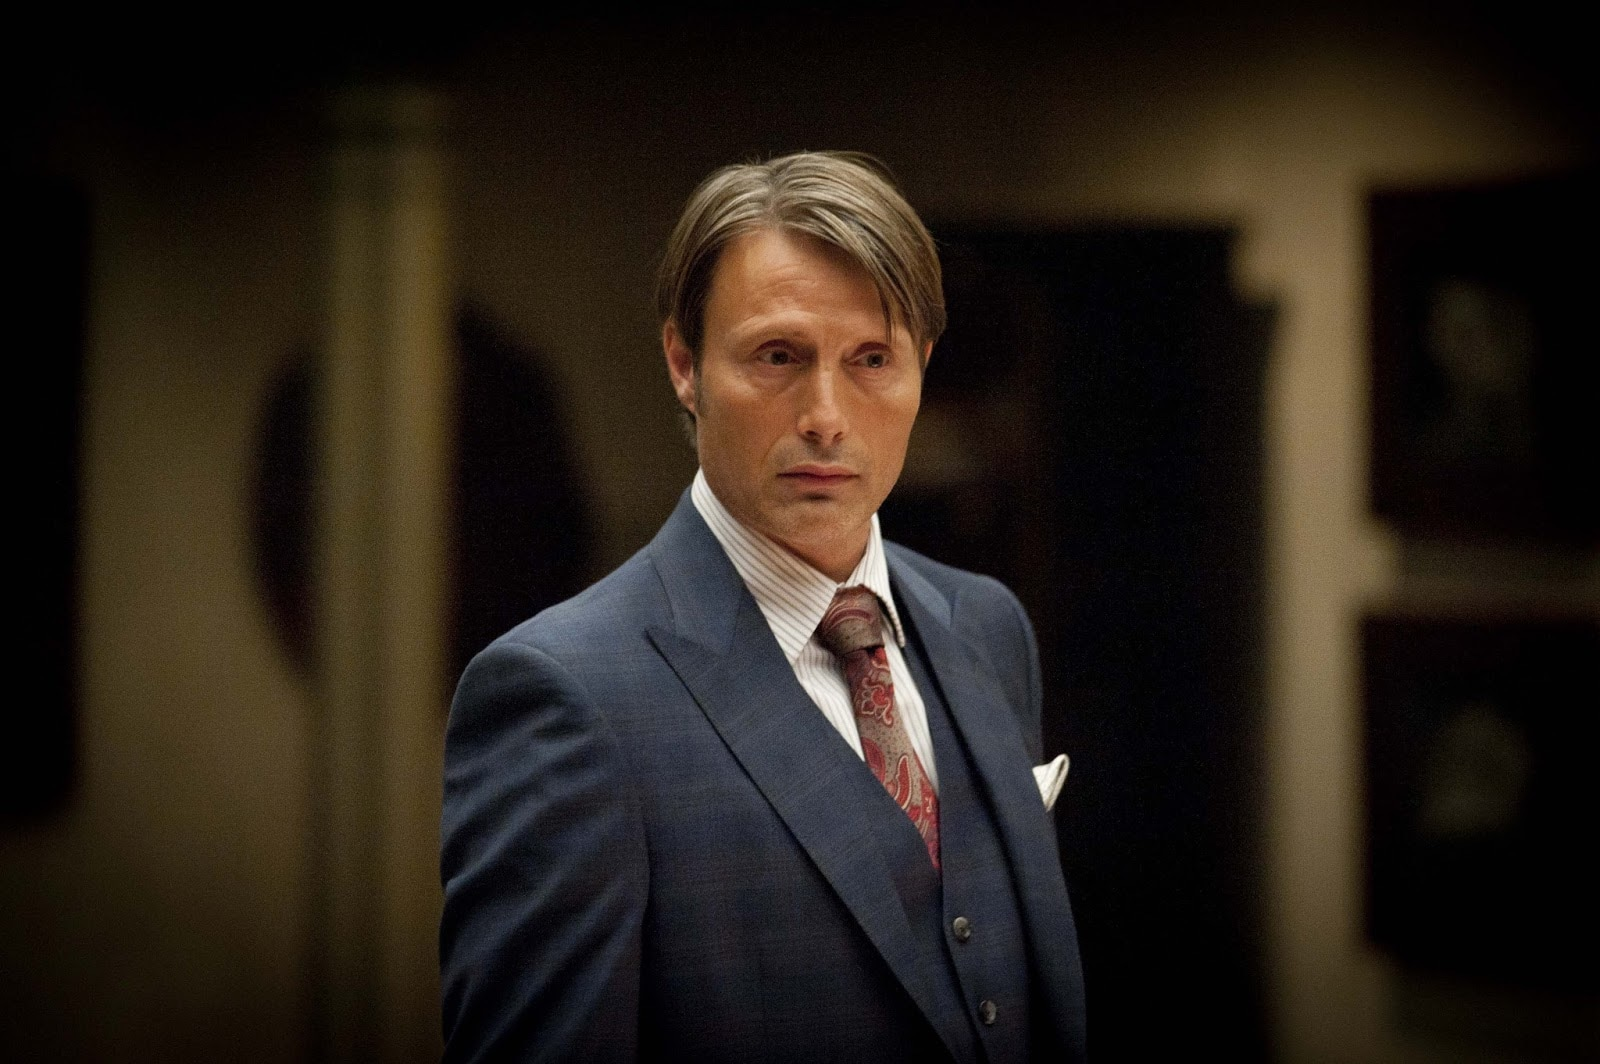 mikkelsen hannibal - Bryan Fuller Discusses a Possible Return of Hannibal